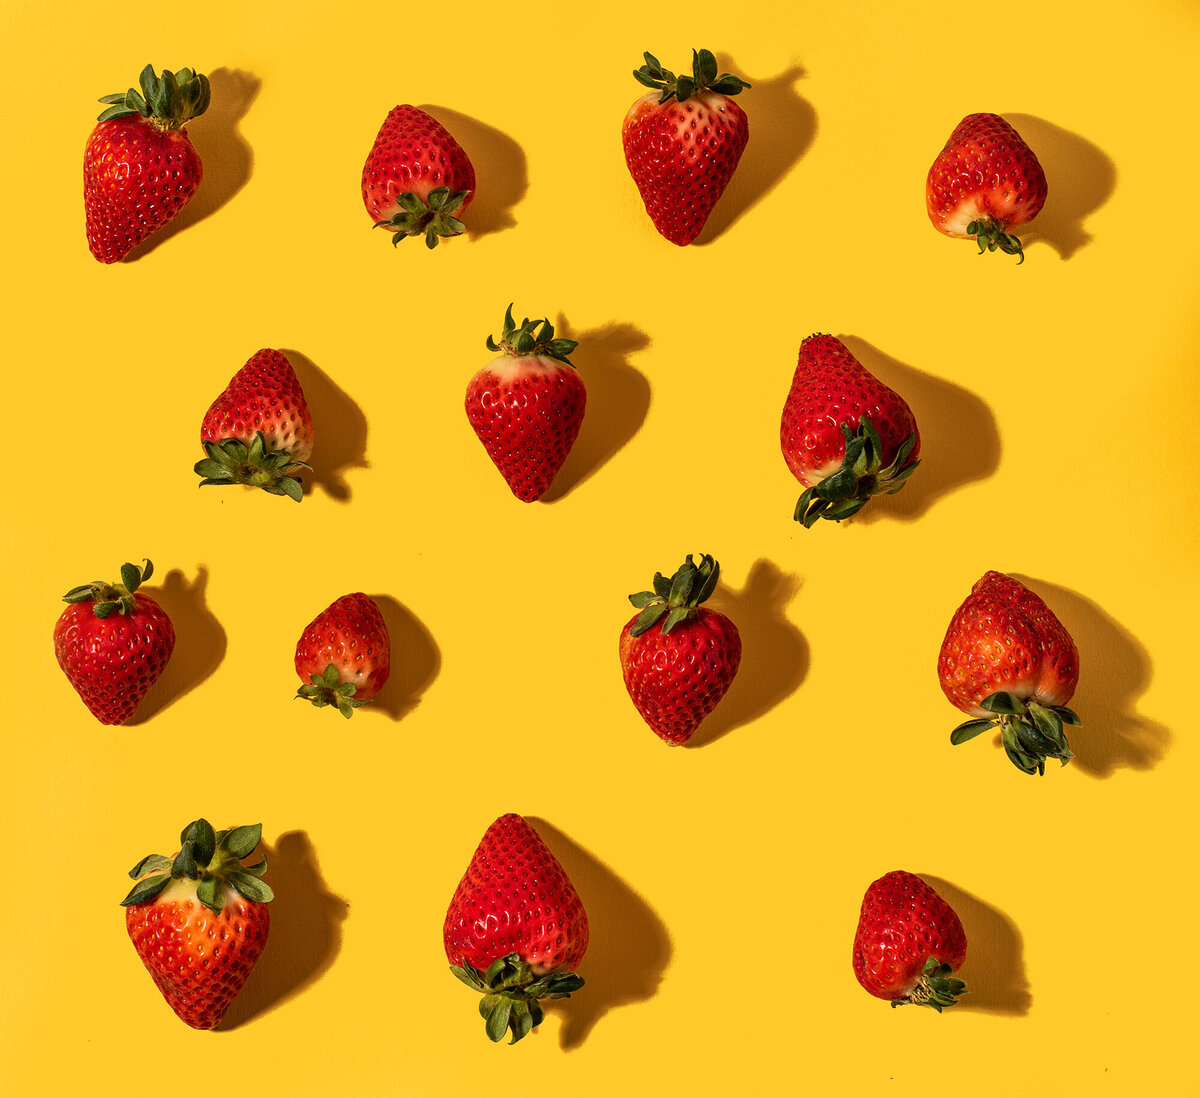 los angeles food photographer produce photography strawberries